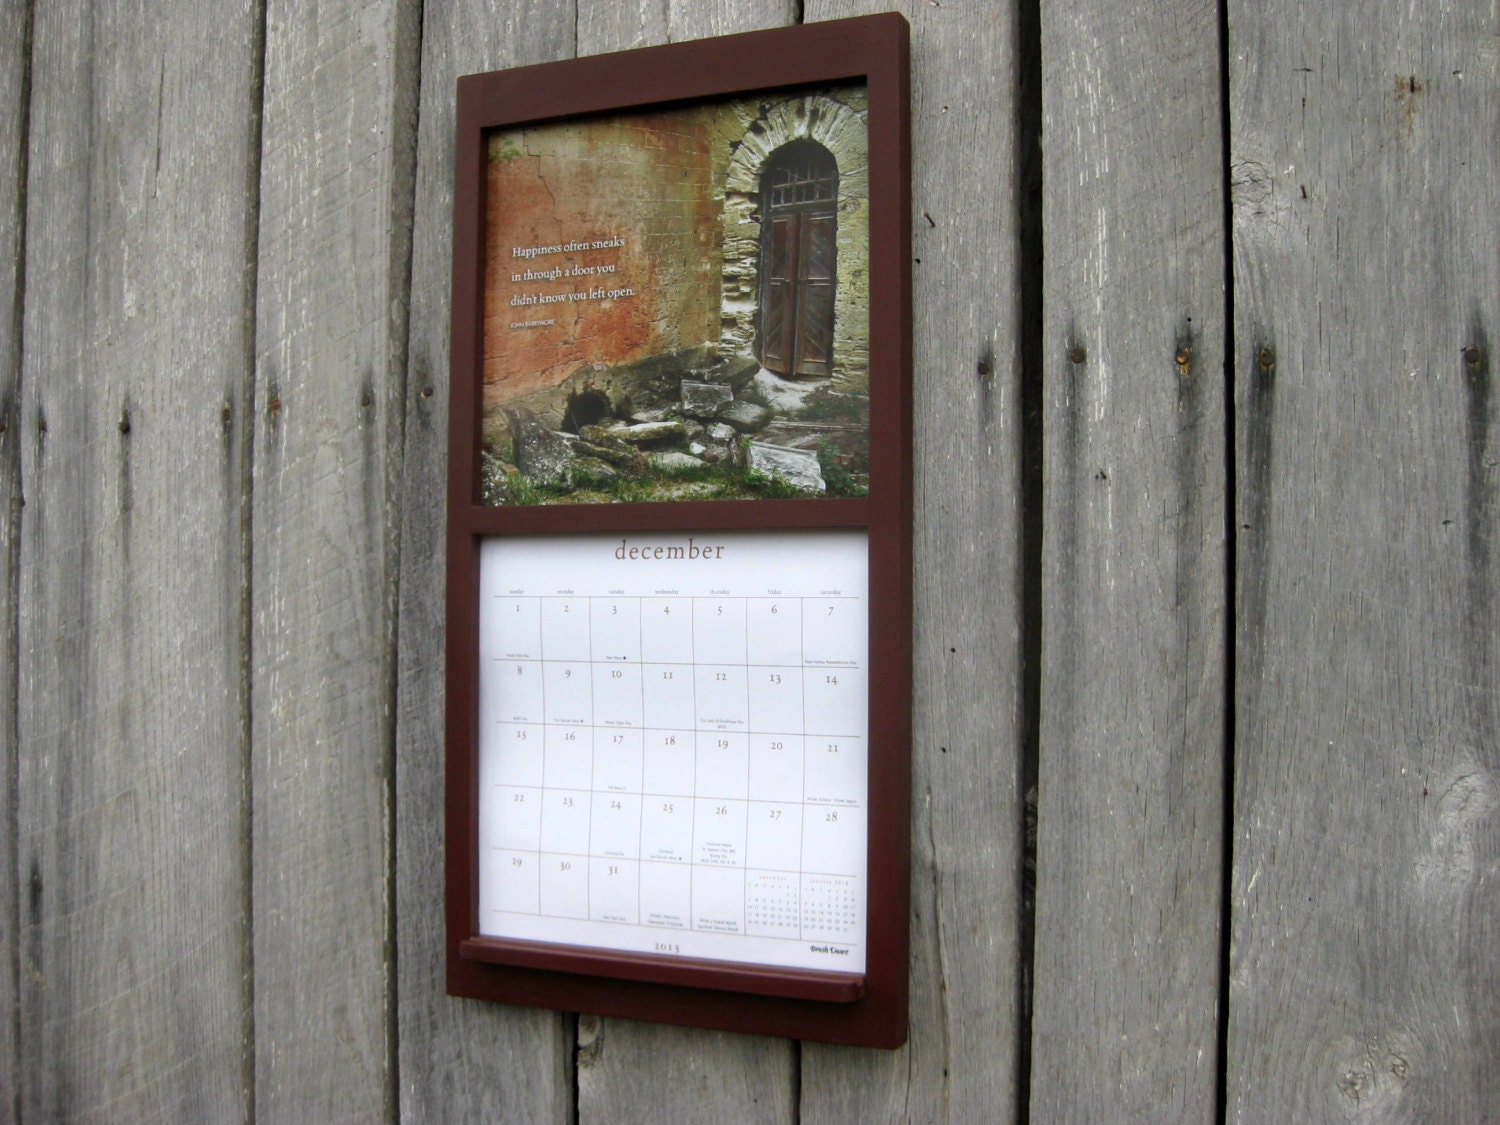 12 x 24 calendar wood frame holder in barn brown. Black Bedroom Furniture Sets. Home Design Ideas